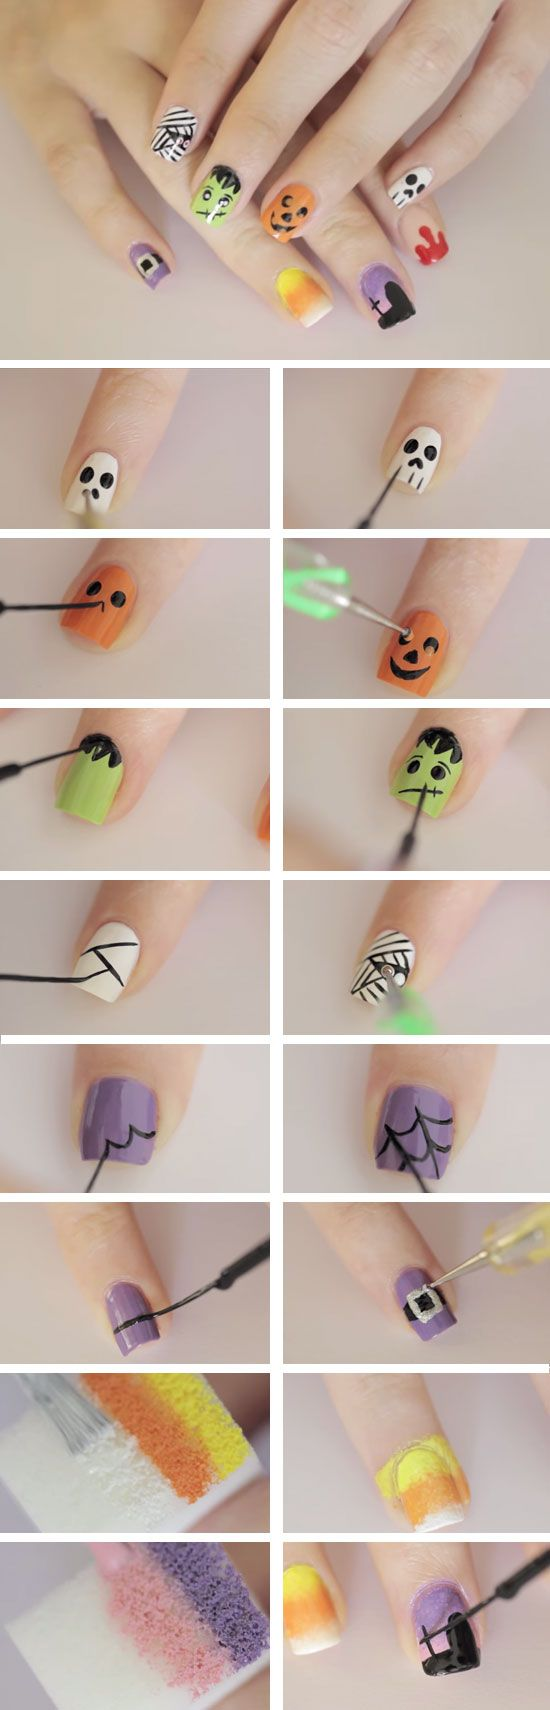 20 step by step halloween nail art design tutorials halloween diy 20 step by step halloween nail art design tutorials halloween diyideas solutioingenieria Gallery